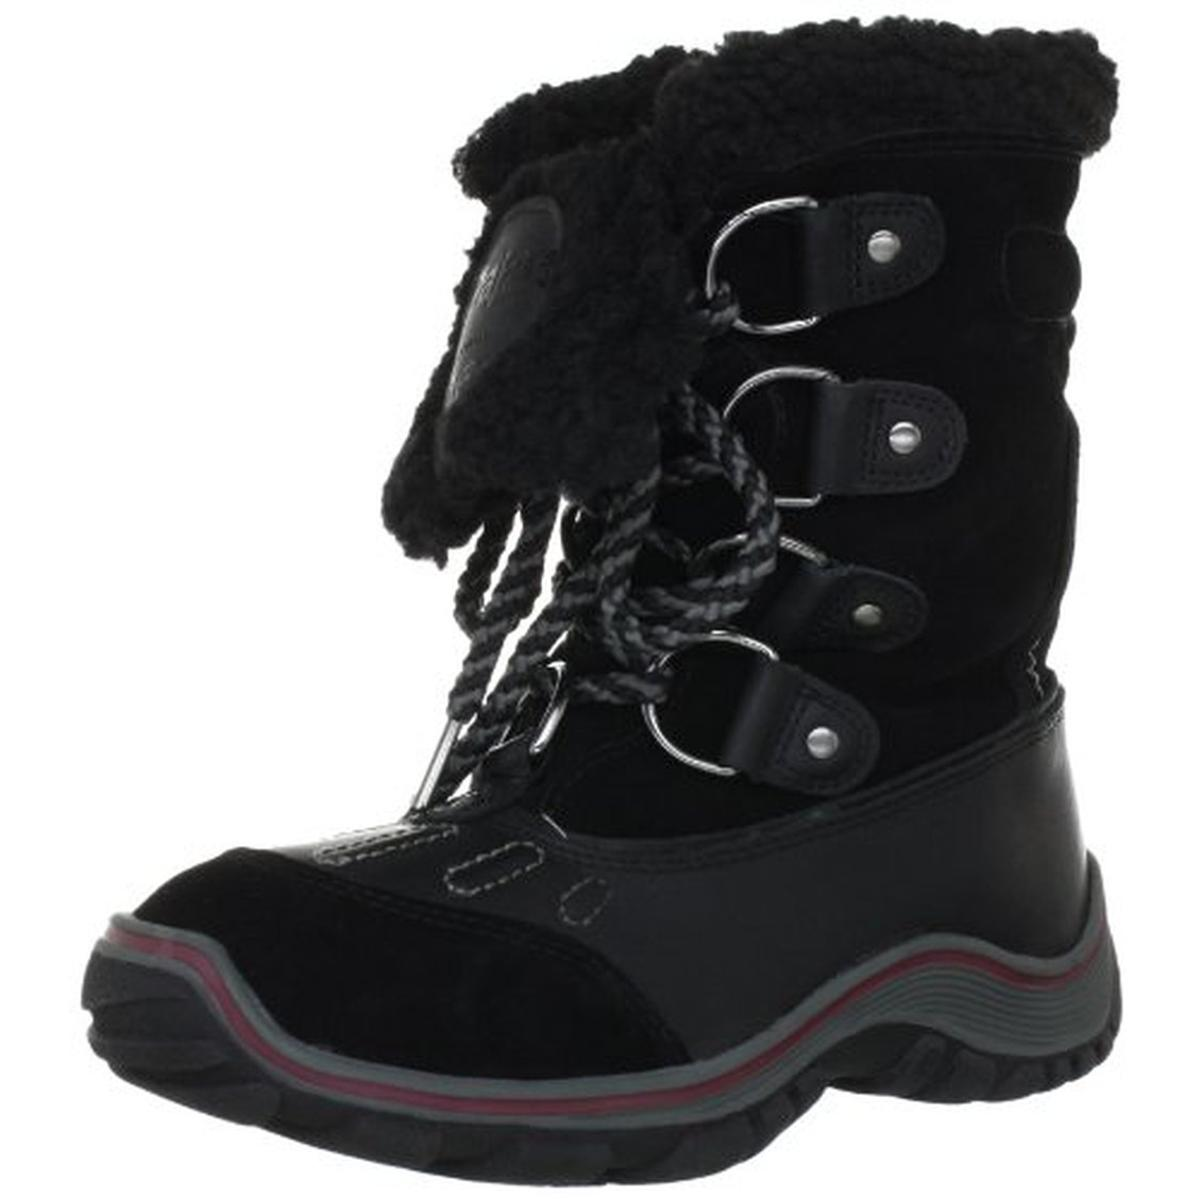 Ladies Waterproof Snow Boots Prices | Homewood Mountain Ski Resort